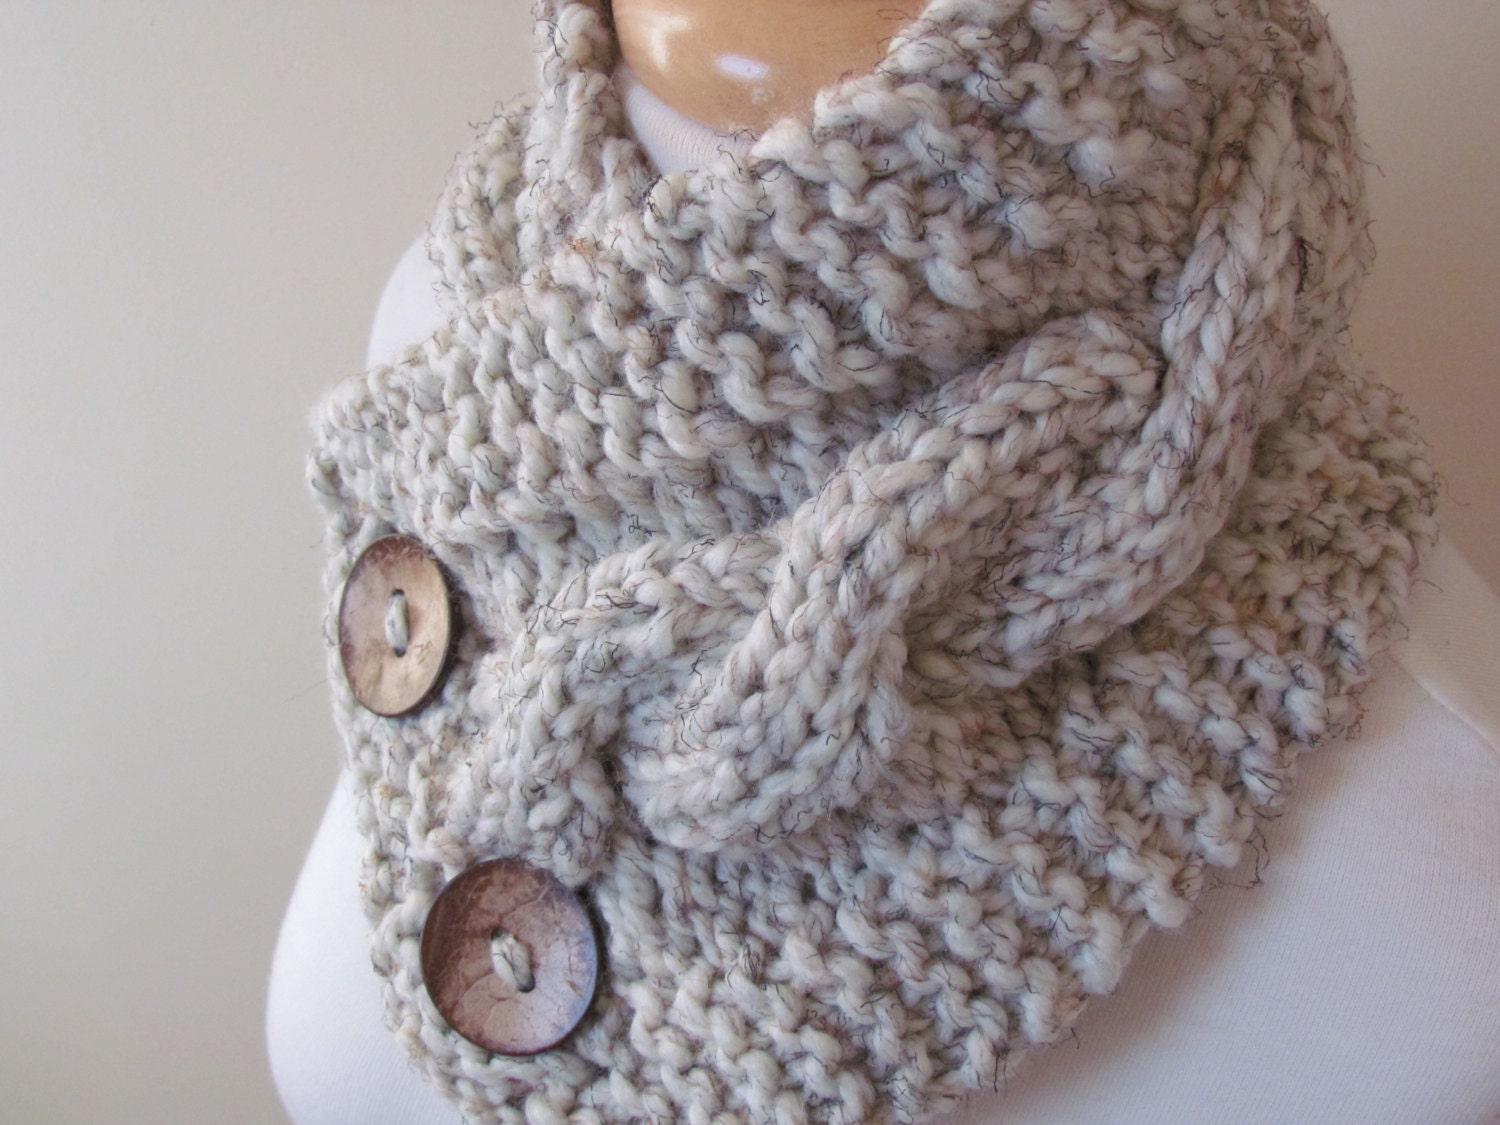 Knitting Pattern Scarf Neck Warmer : Knit Neck Warmer Cable Knit Scarf Chunky by pegsyarncreations